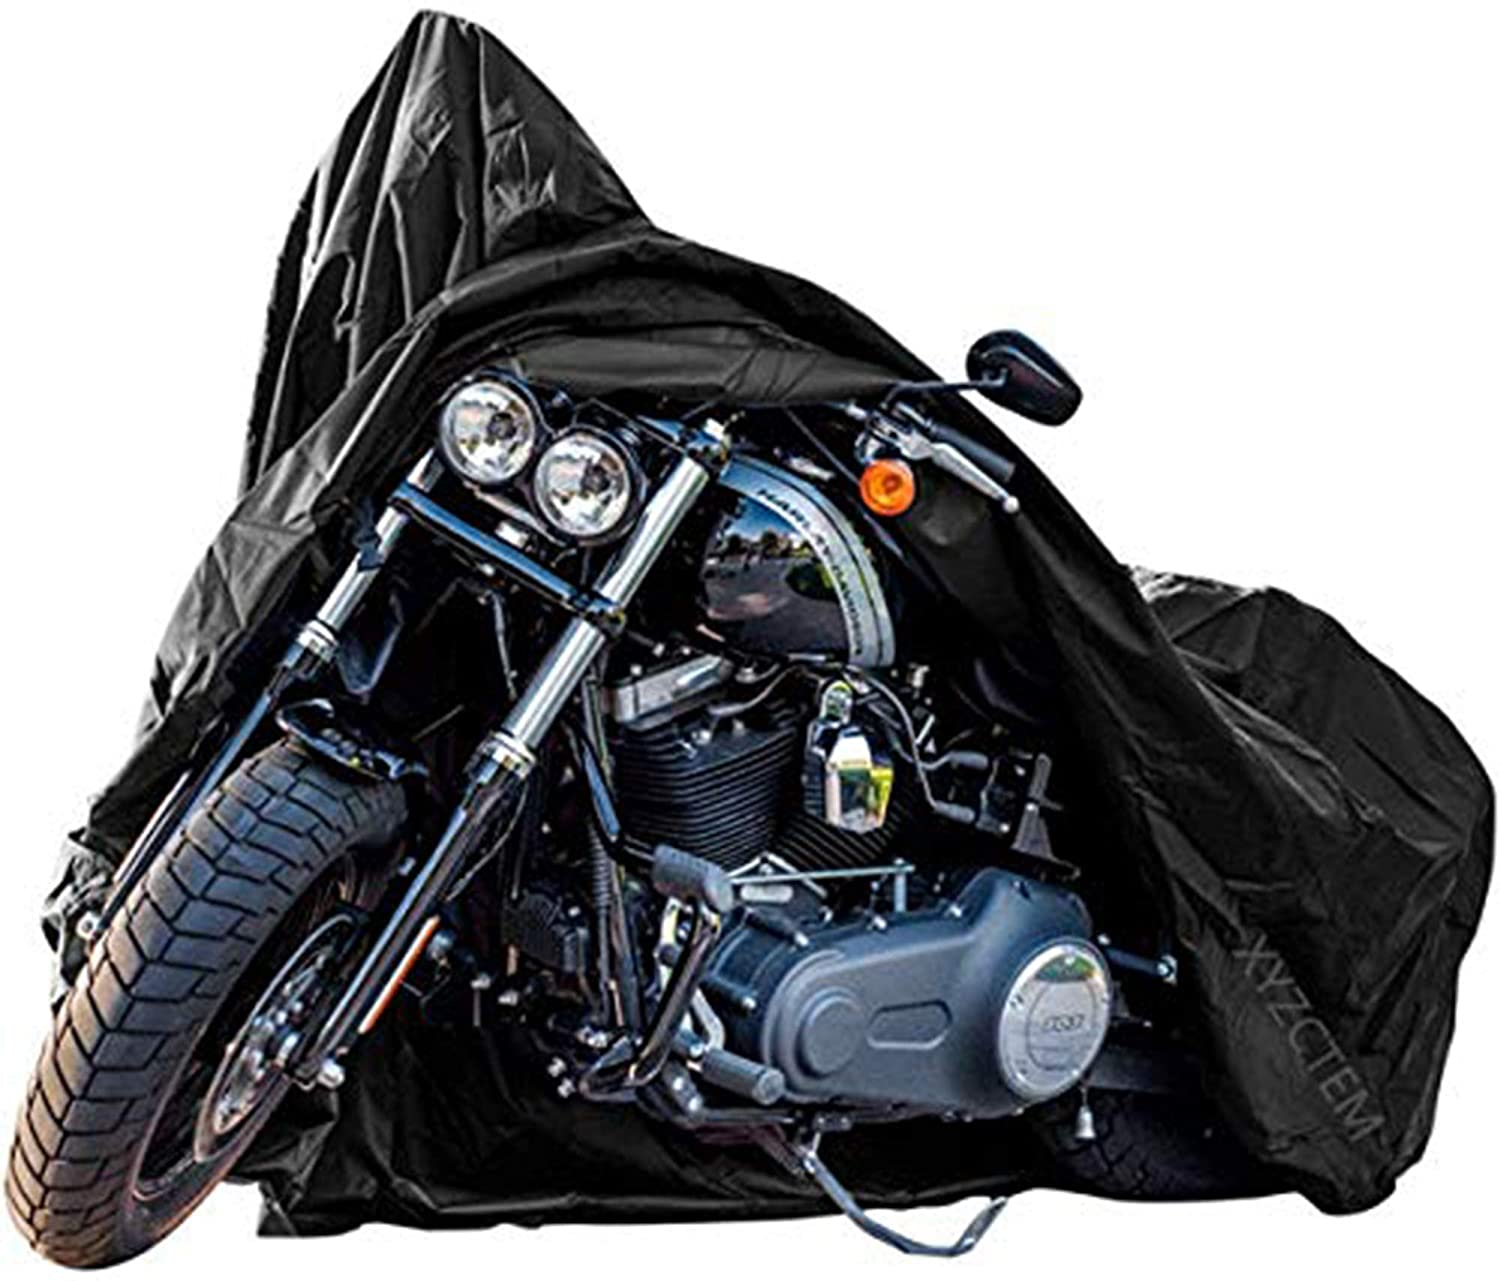 New Generation Motorcycle cover ! XYZCTEM All Weather Black XXXL Large Waterproof Outdoor Protects Fits up